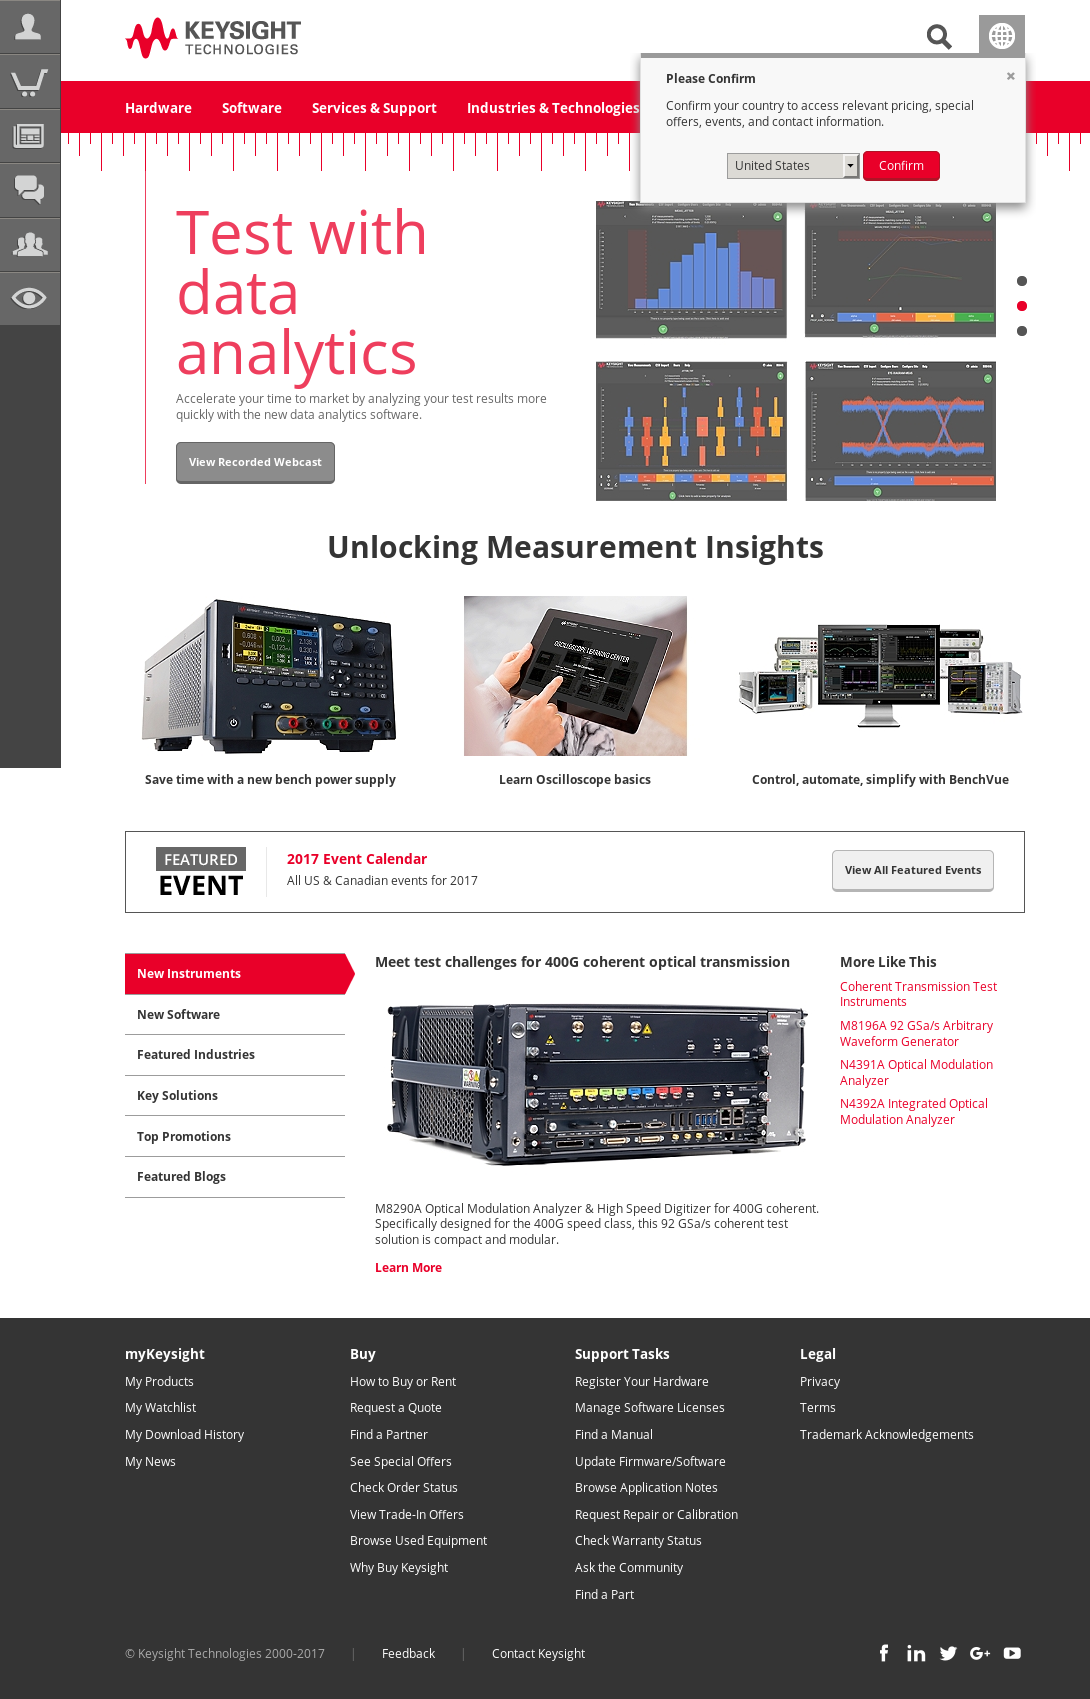 Keysight Competitors, Revenue and Employees - Owler Company